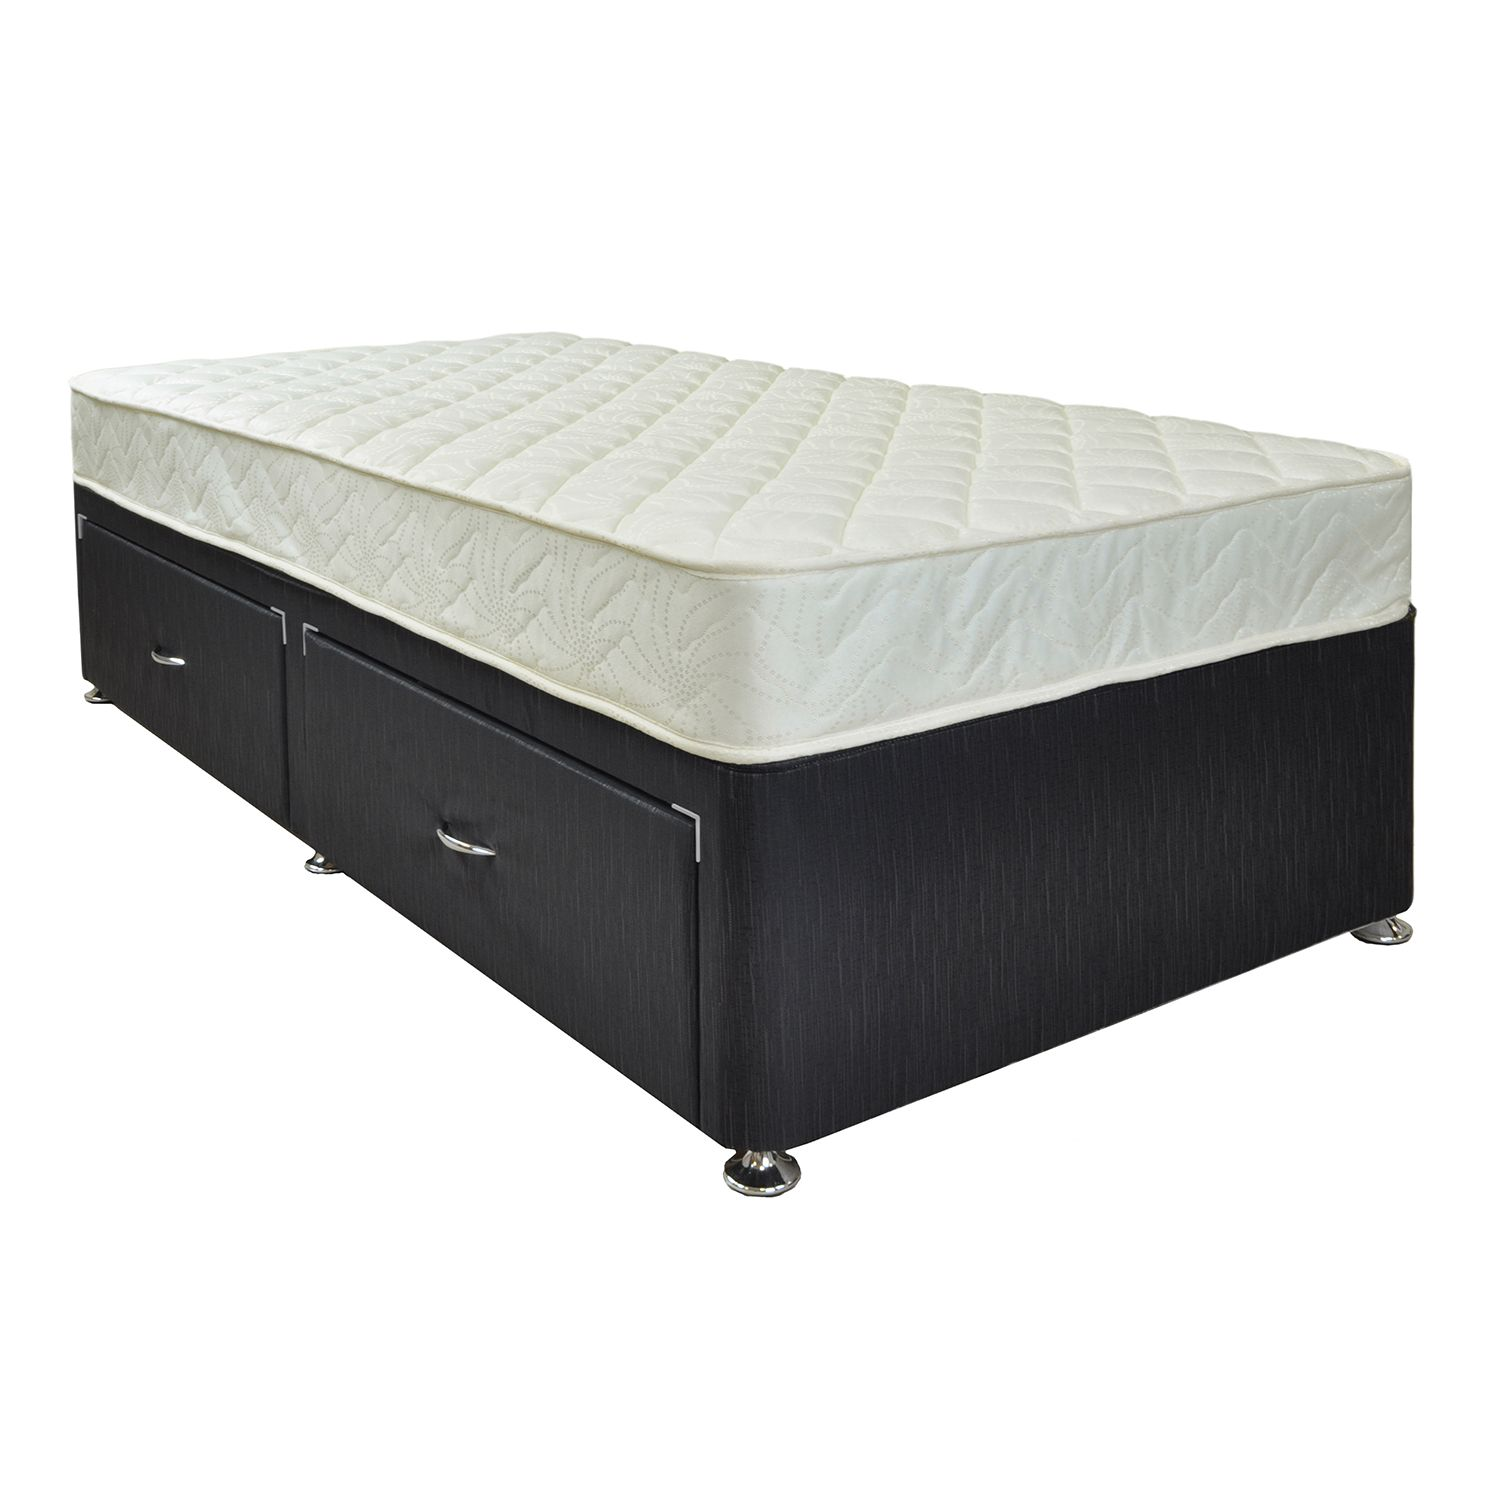 Best Mattresses Mattresses For Sale Black Friday Mattresses 640 x 480